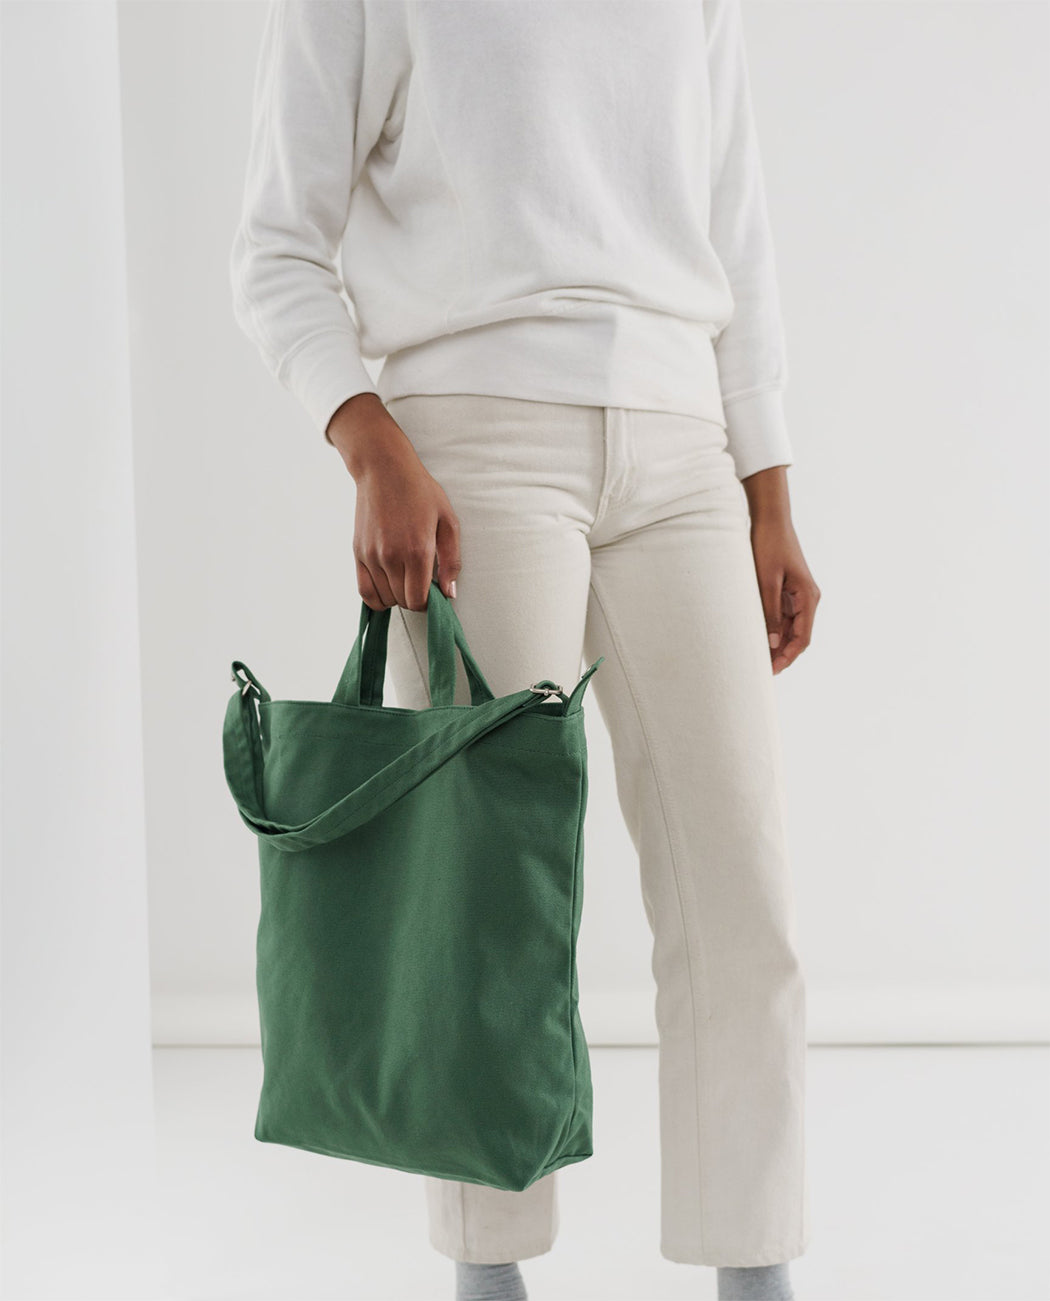 Baggu Duck Bag Eucalyptus Green Sustainable Fashion Utrecht